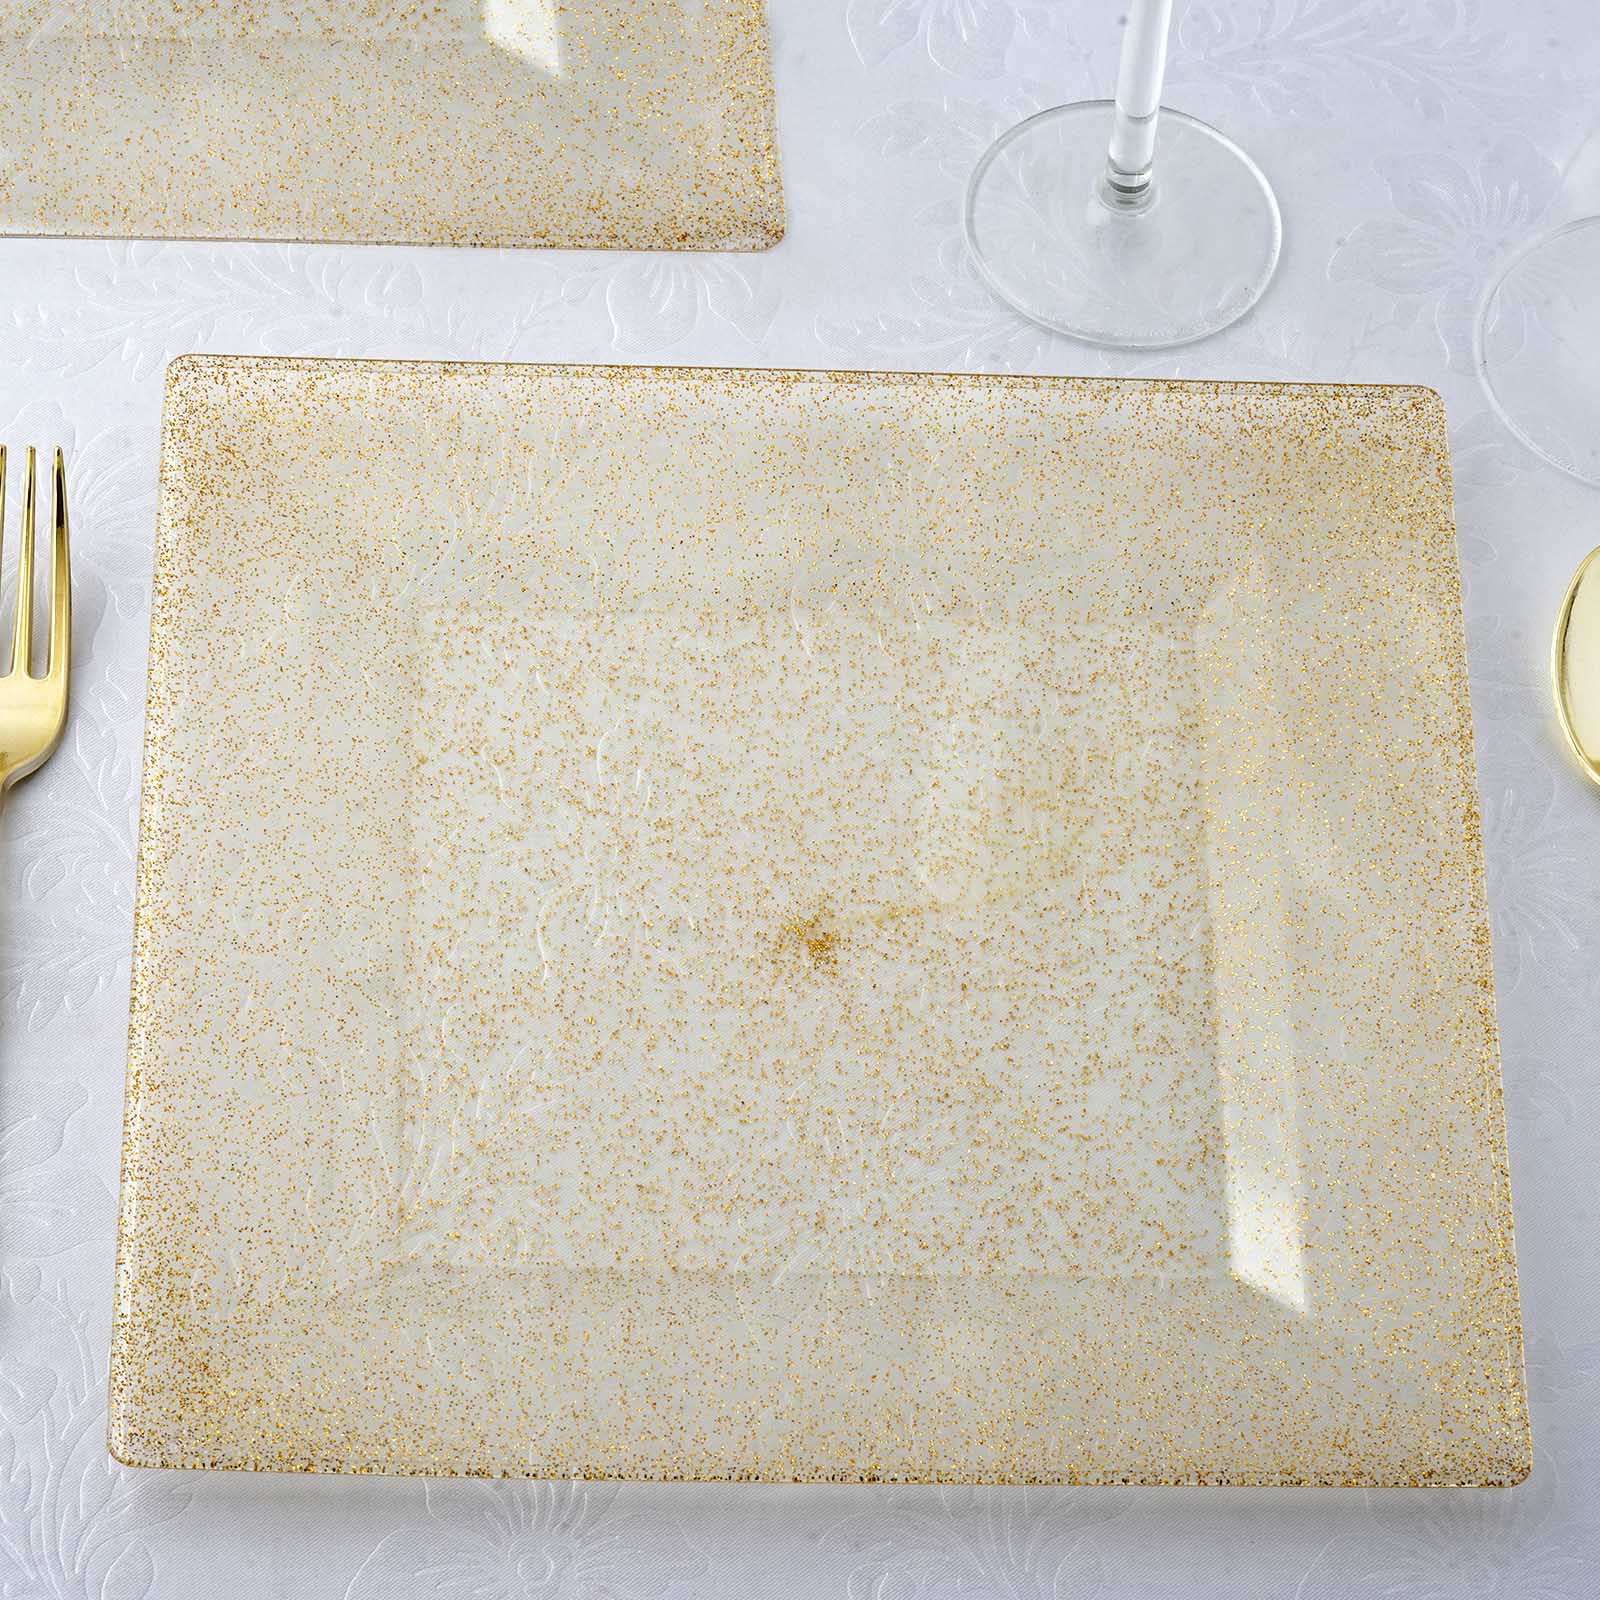 12 Pack 10 Quot Disposable Gold Dust Square Dinner Plates With